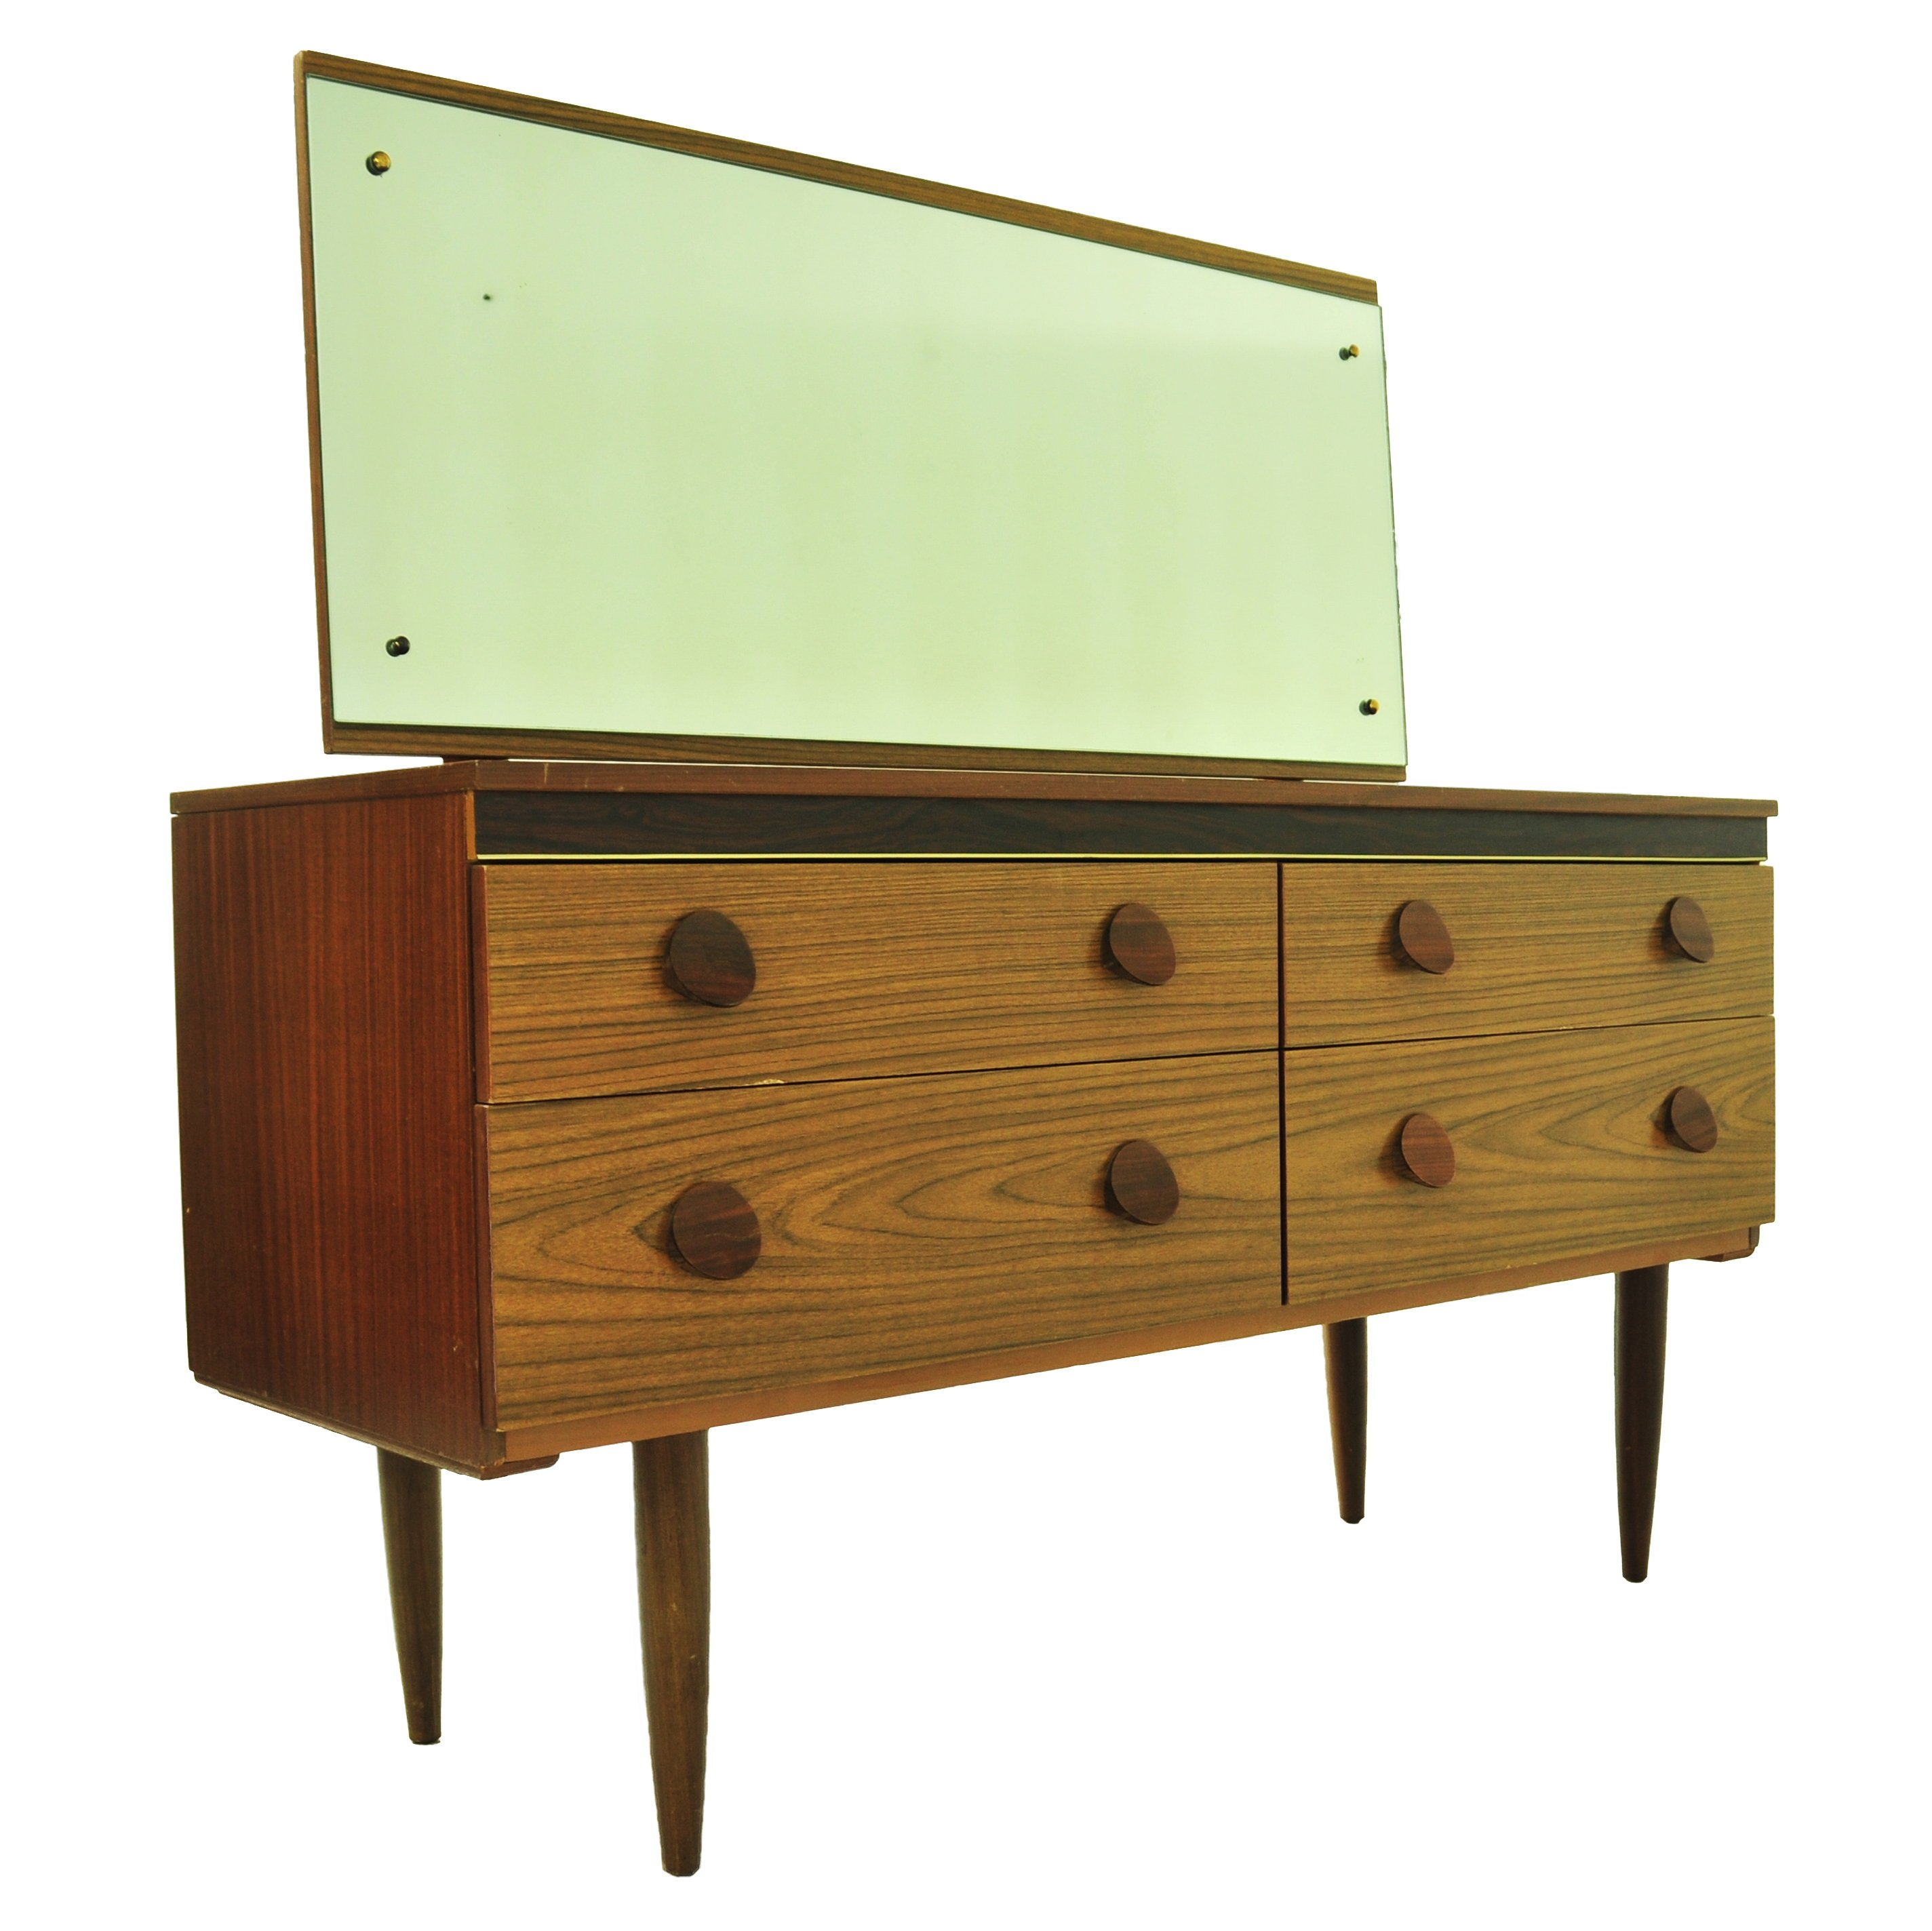 Vintage dressing table 1960s 59280 for Retro dressing table